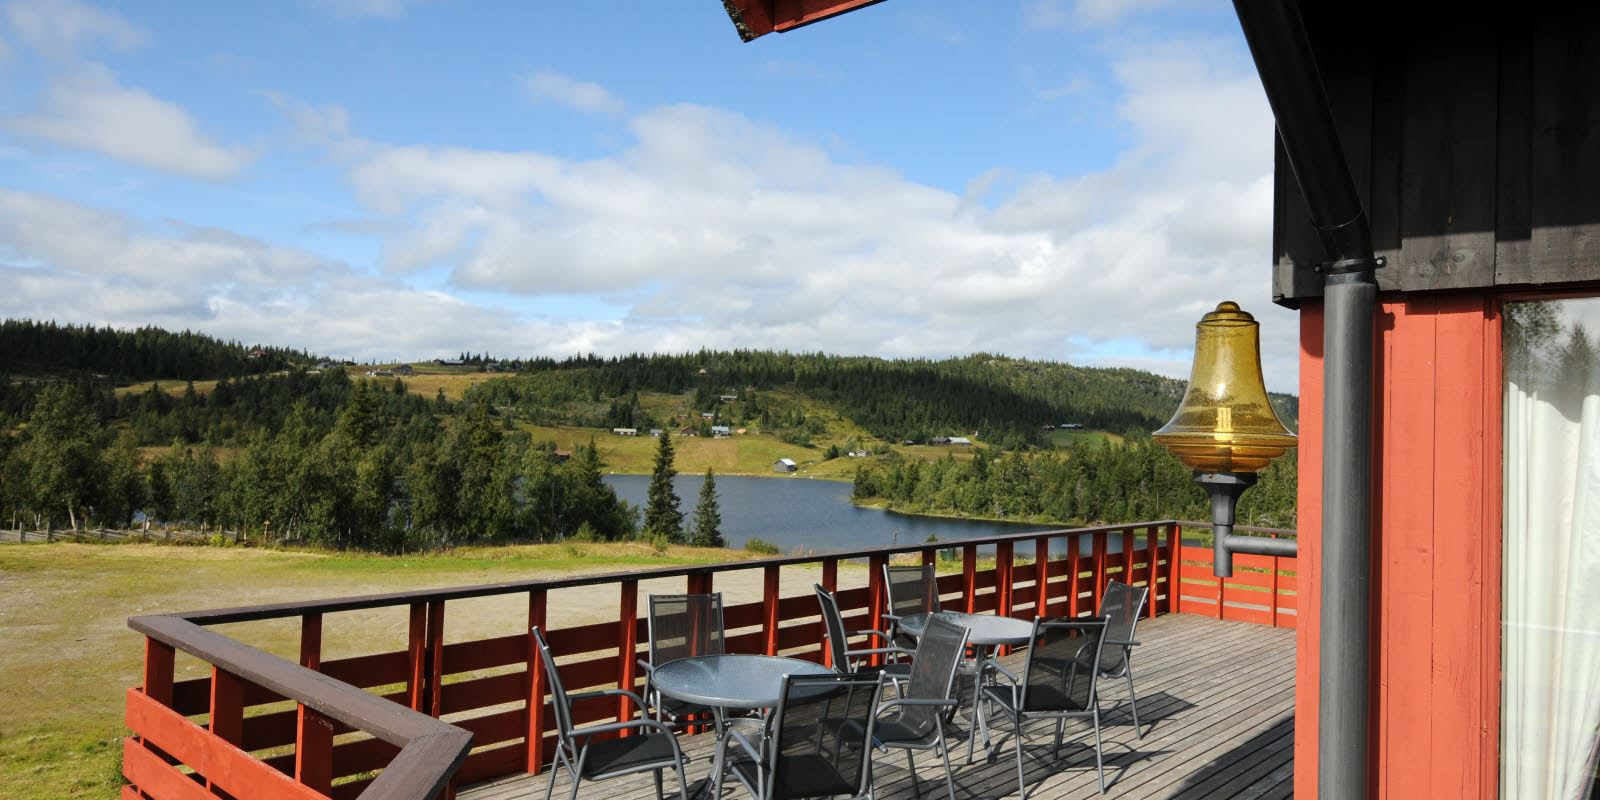 Mountain veranda with seating area and sun at Austlid fjellstue at Thon Hotel Skeikampen